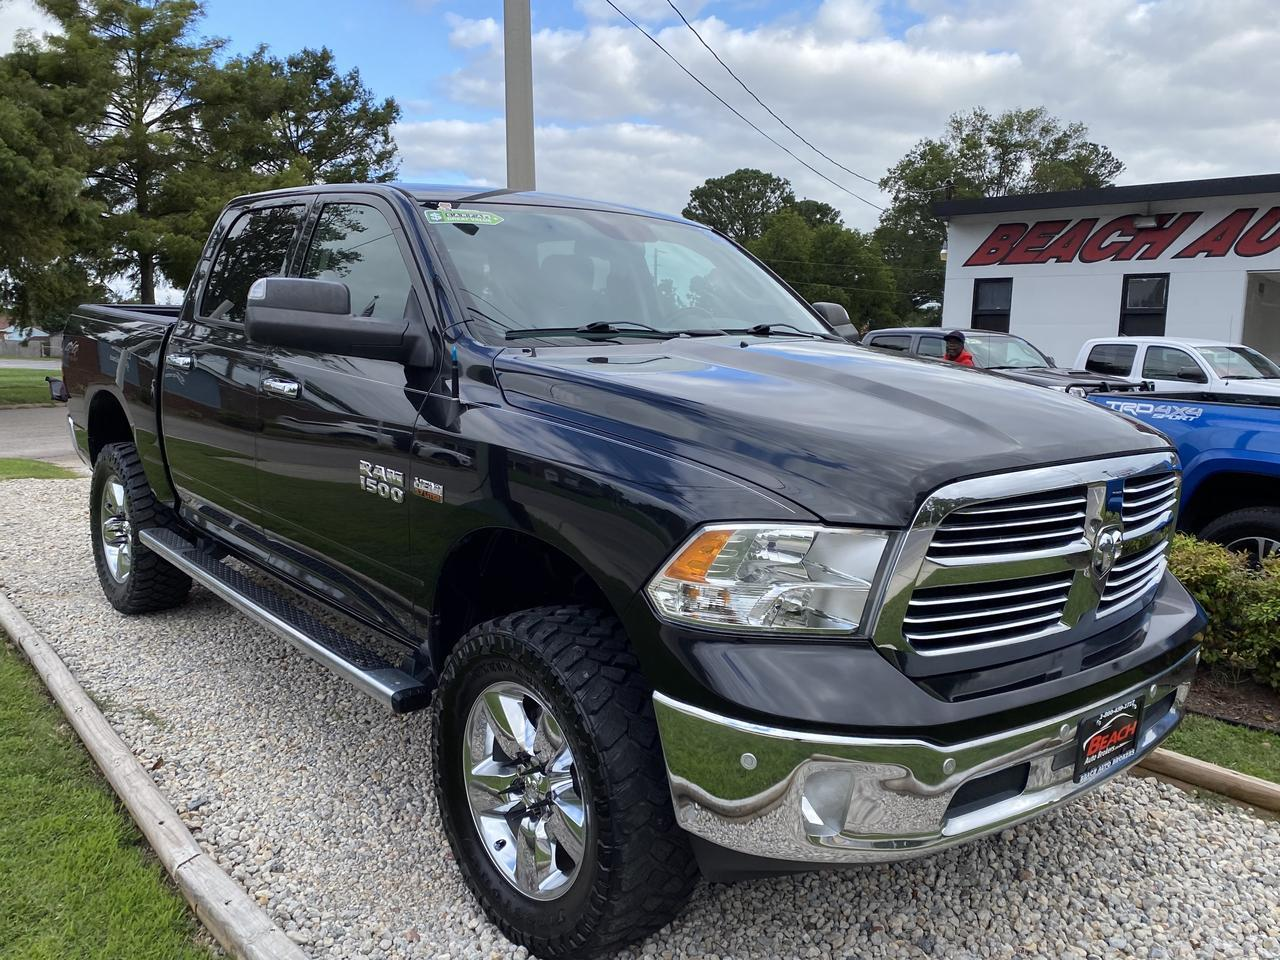 2015 DODGE RAM 1500 BIG HORN CREW CAB 4X4, WARRANTY, NAV, HEATED SEATS, HEATED STEERING WHEEL, REMOTE START, CLEAN! Norfolk VA